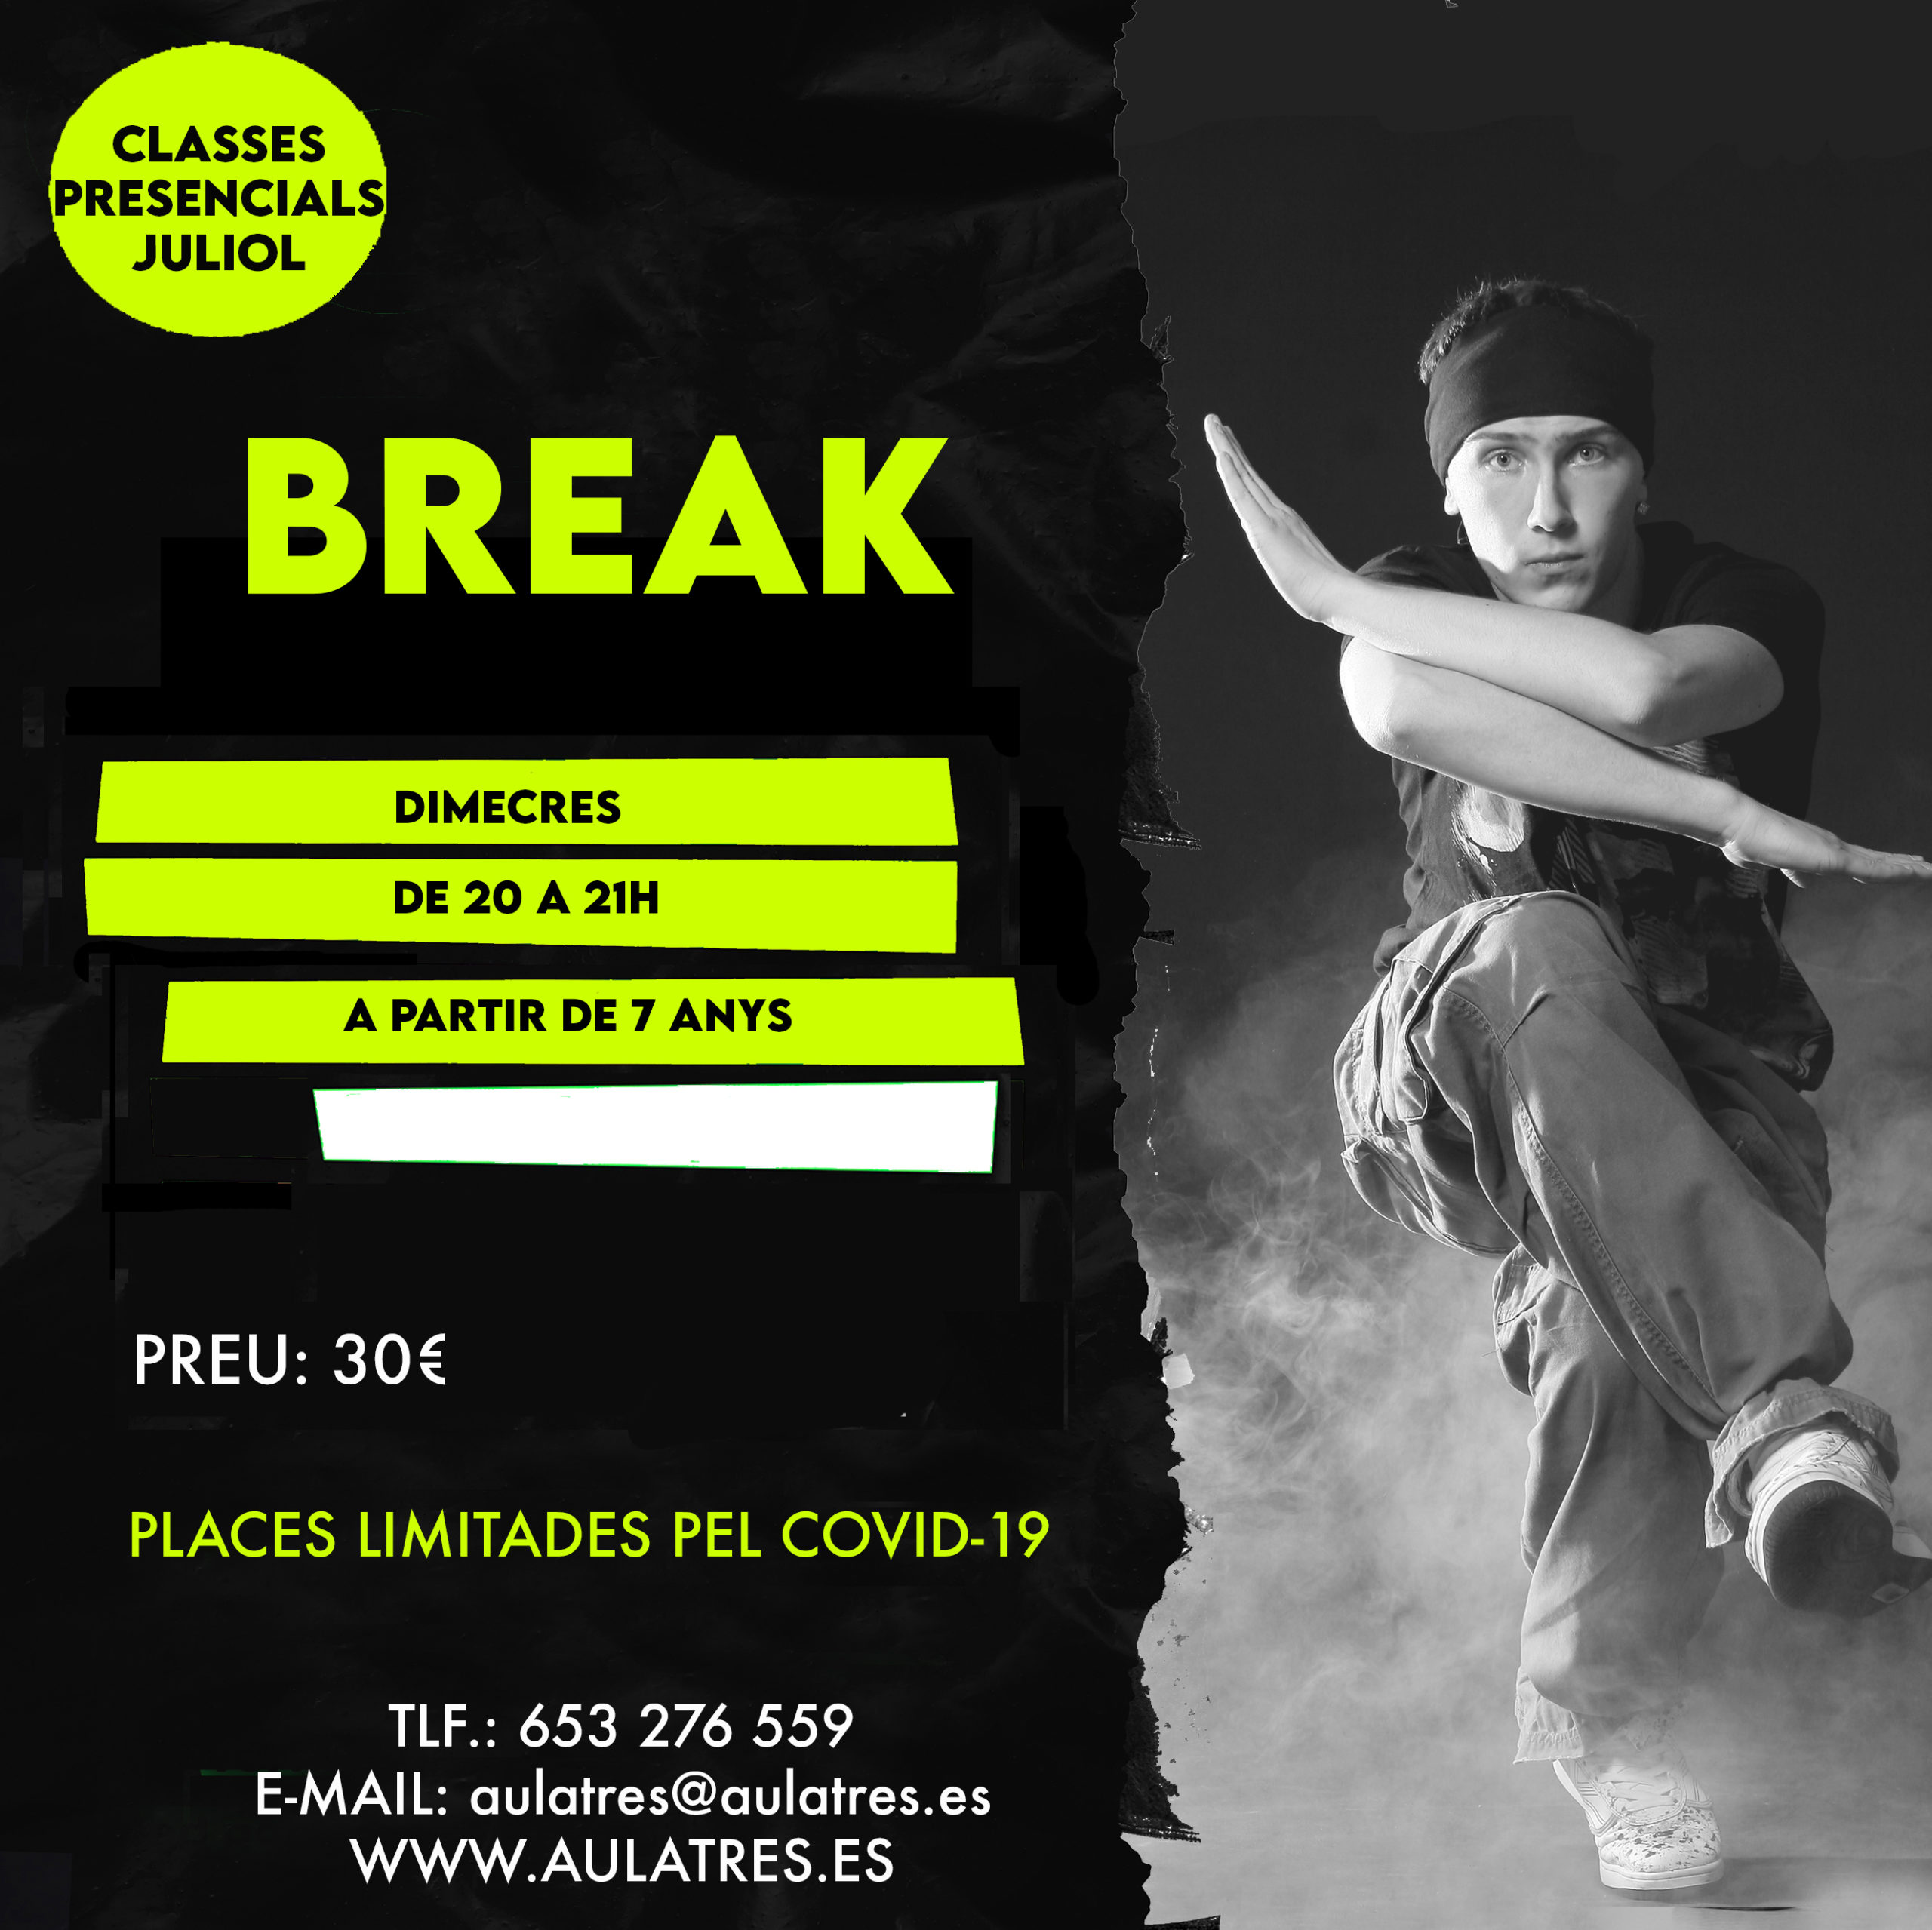 PRESENCIALES BREAK